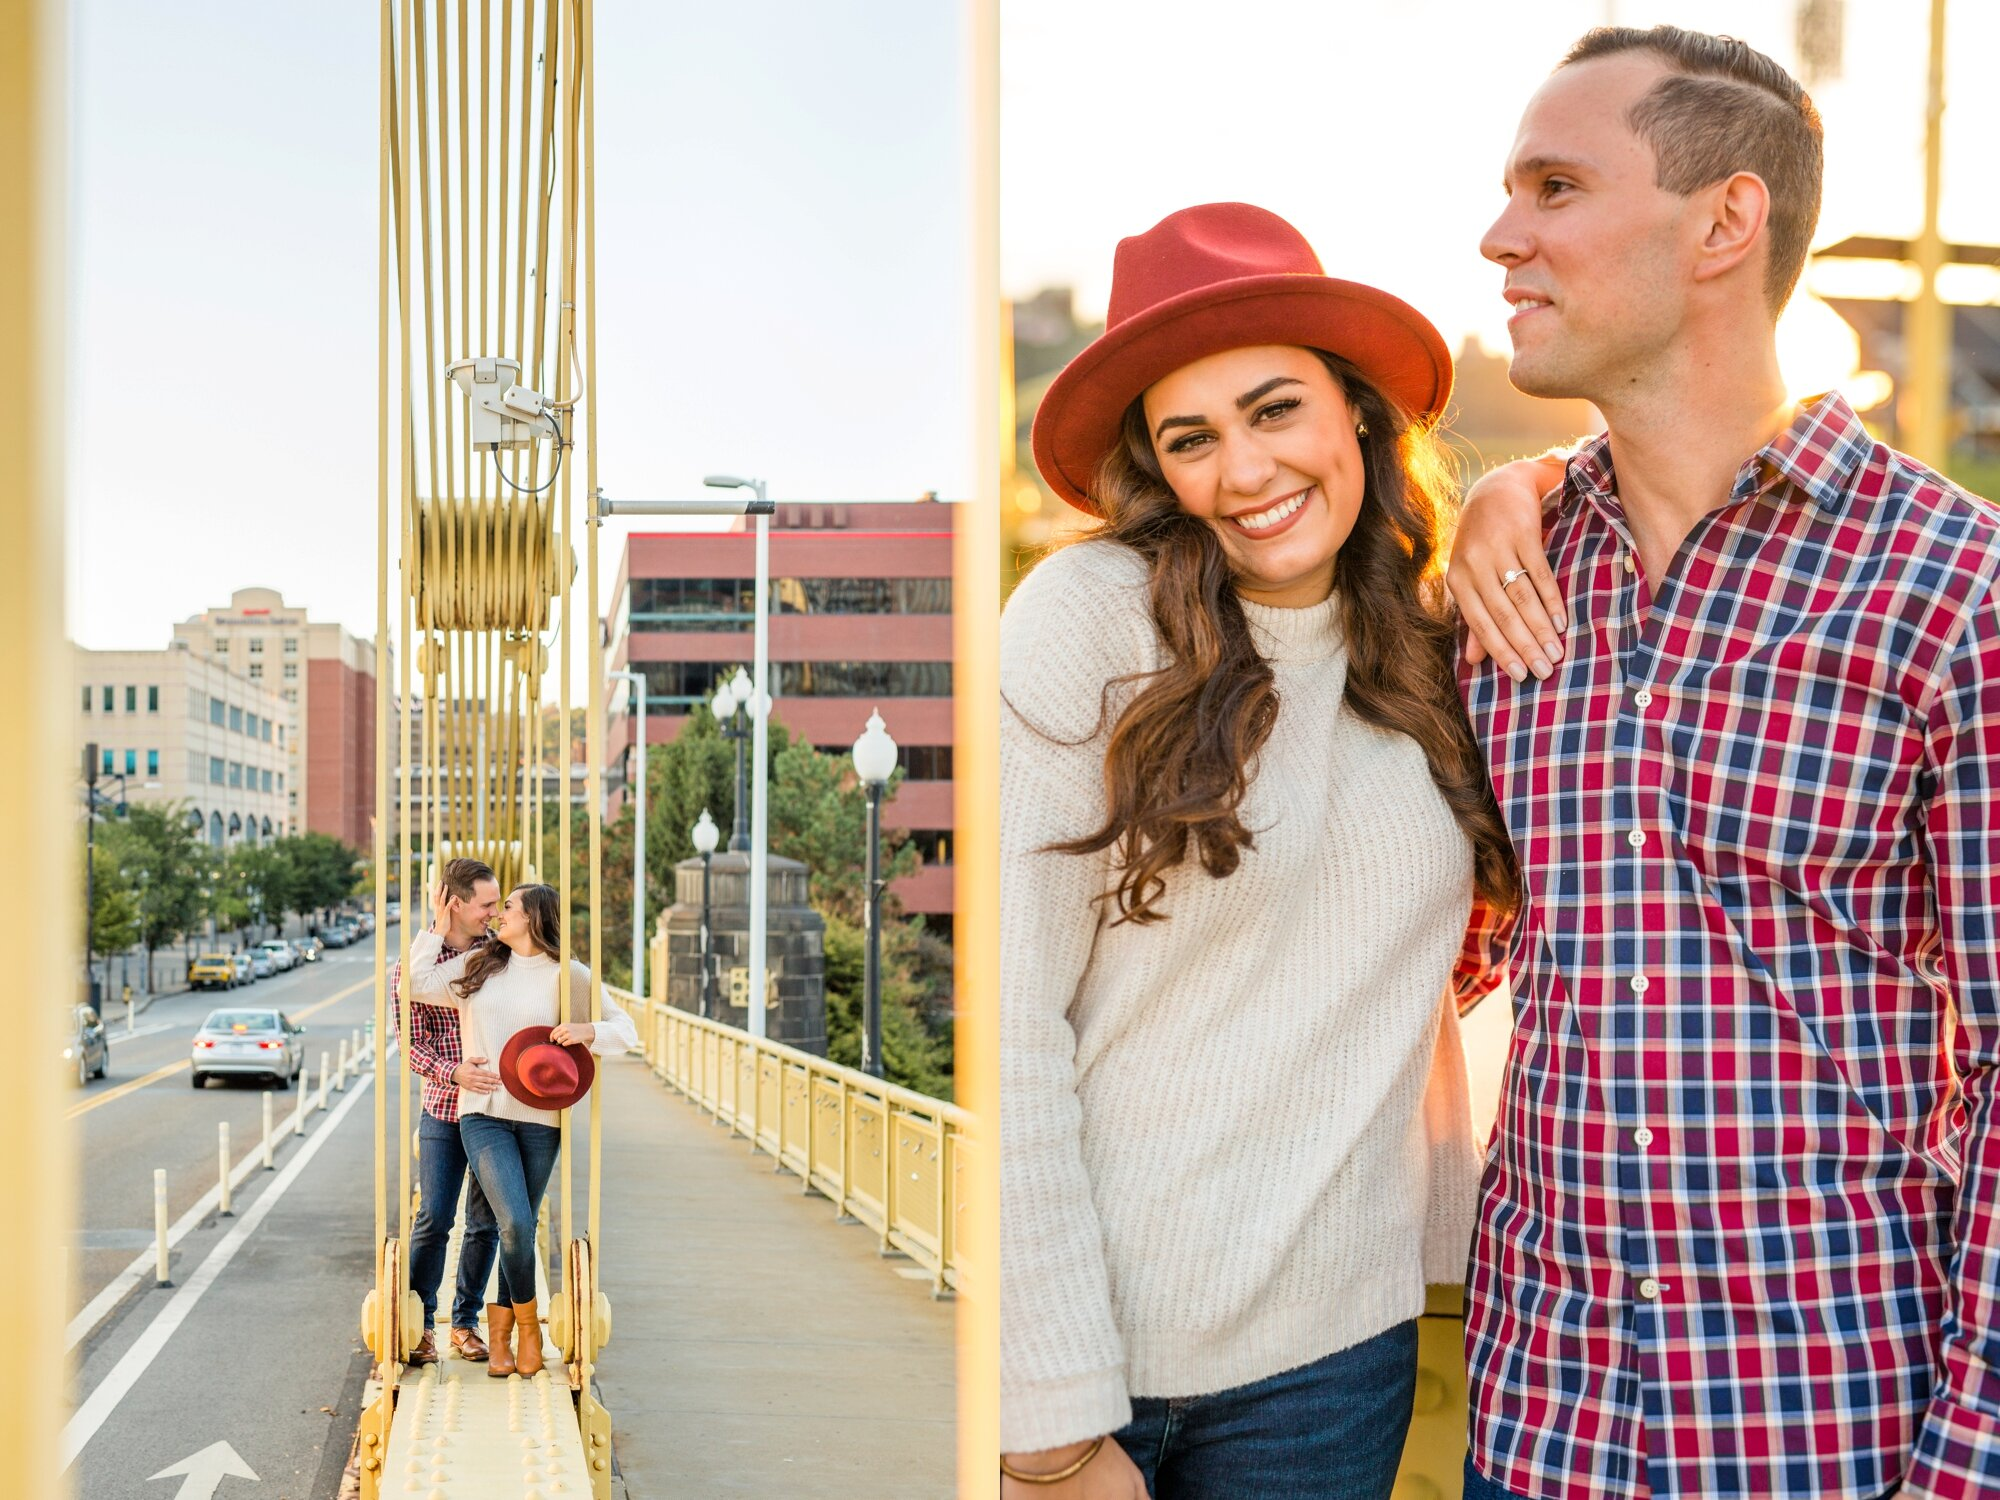 pittsburgh wedding photographer, allegheny commons park engagement photos, north shore engagement photos, roberto clemente bridge engagement photos, mexican war streets